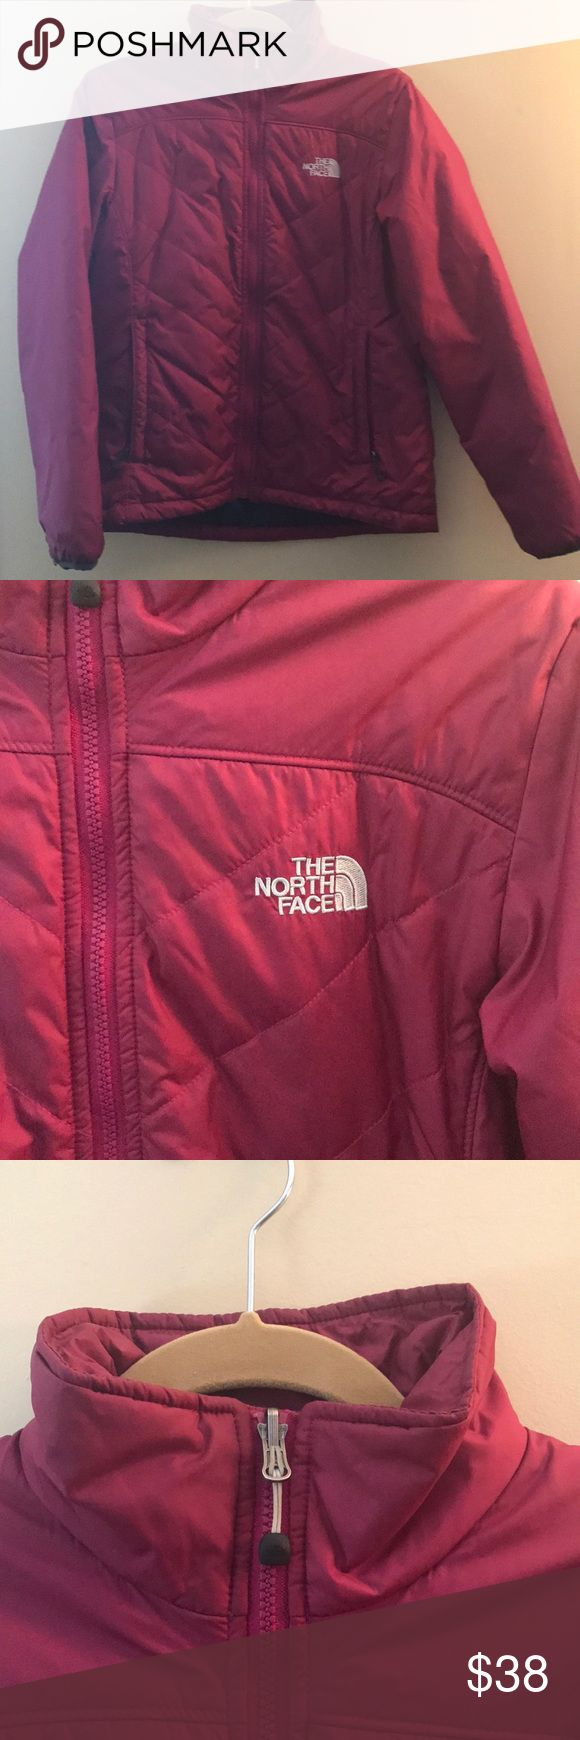 The North Face Pink Puffer Jacket Worn for one season has lots of life left to too big for me now. Purchased at the North Face outlet. Size medium. Right inside armpit has a rip that can easily be repaired. No noticeable rips or stains on the outside. Color is a deep pink. Very warm worn through a season in New Hampshire very comfortably! The North Face Jackets & Coats Puffers